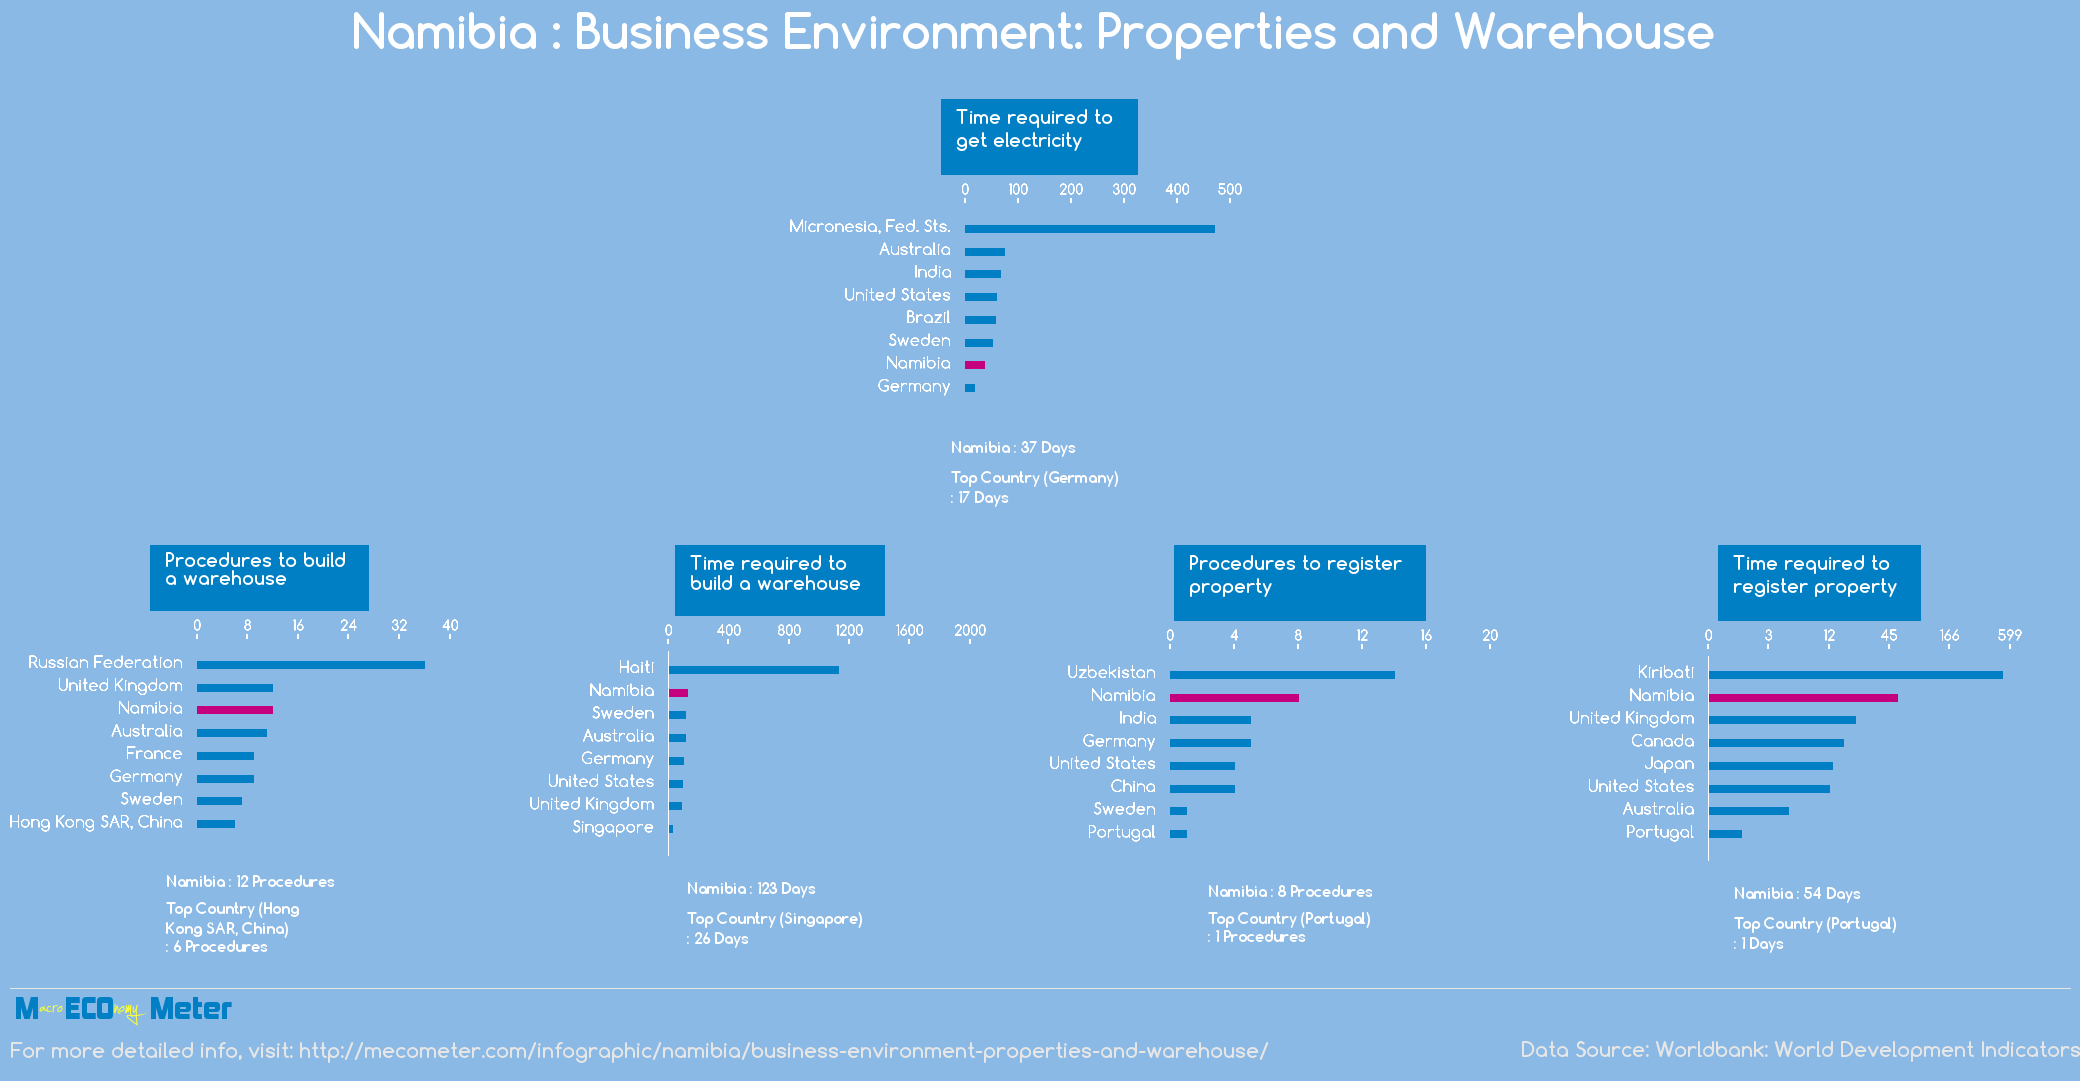 Namibia : Business Environment: Properties and Warehouse